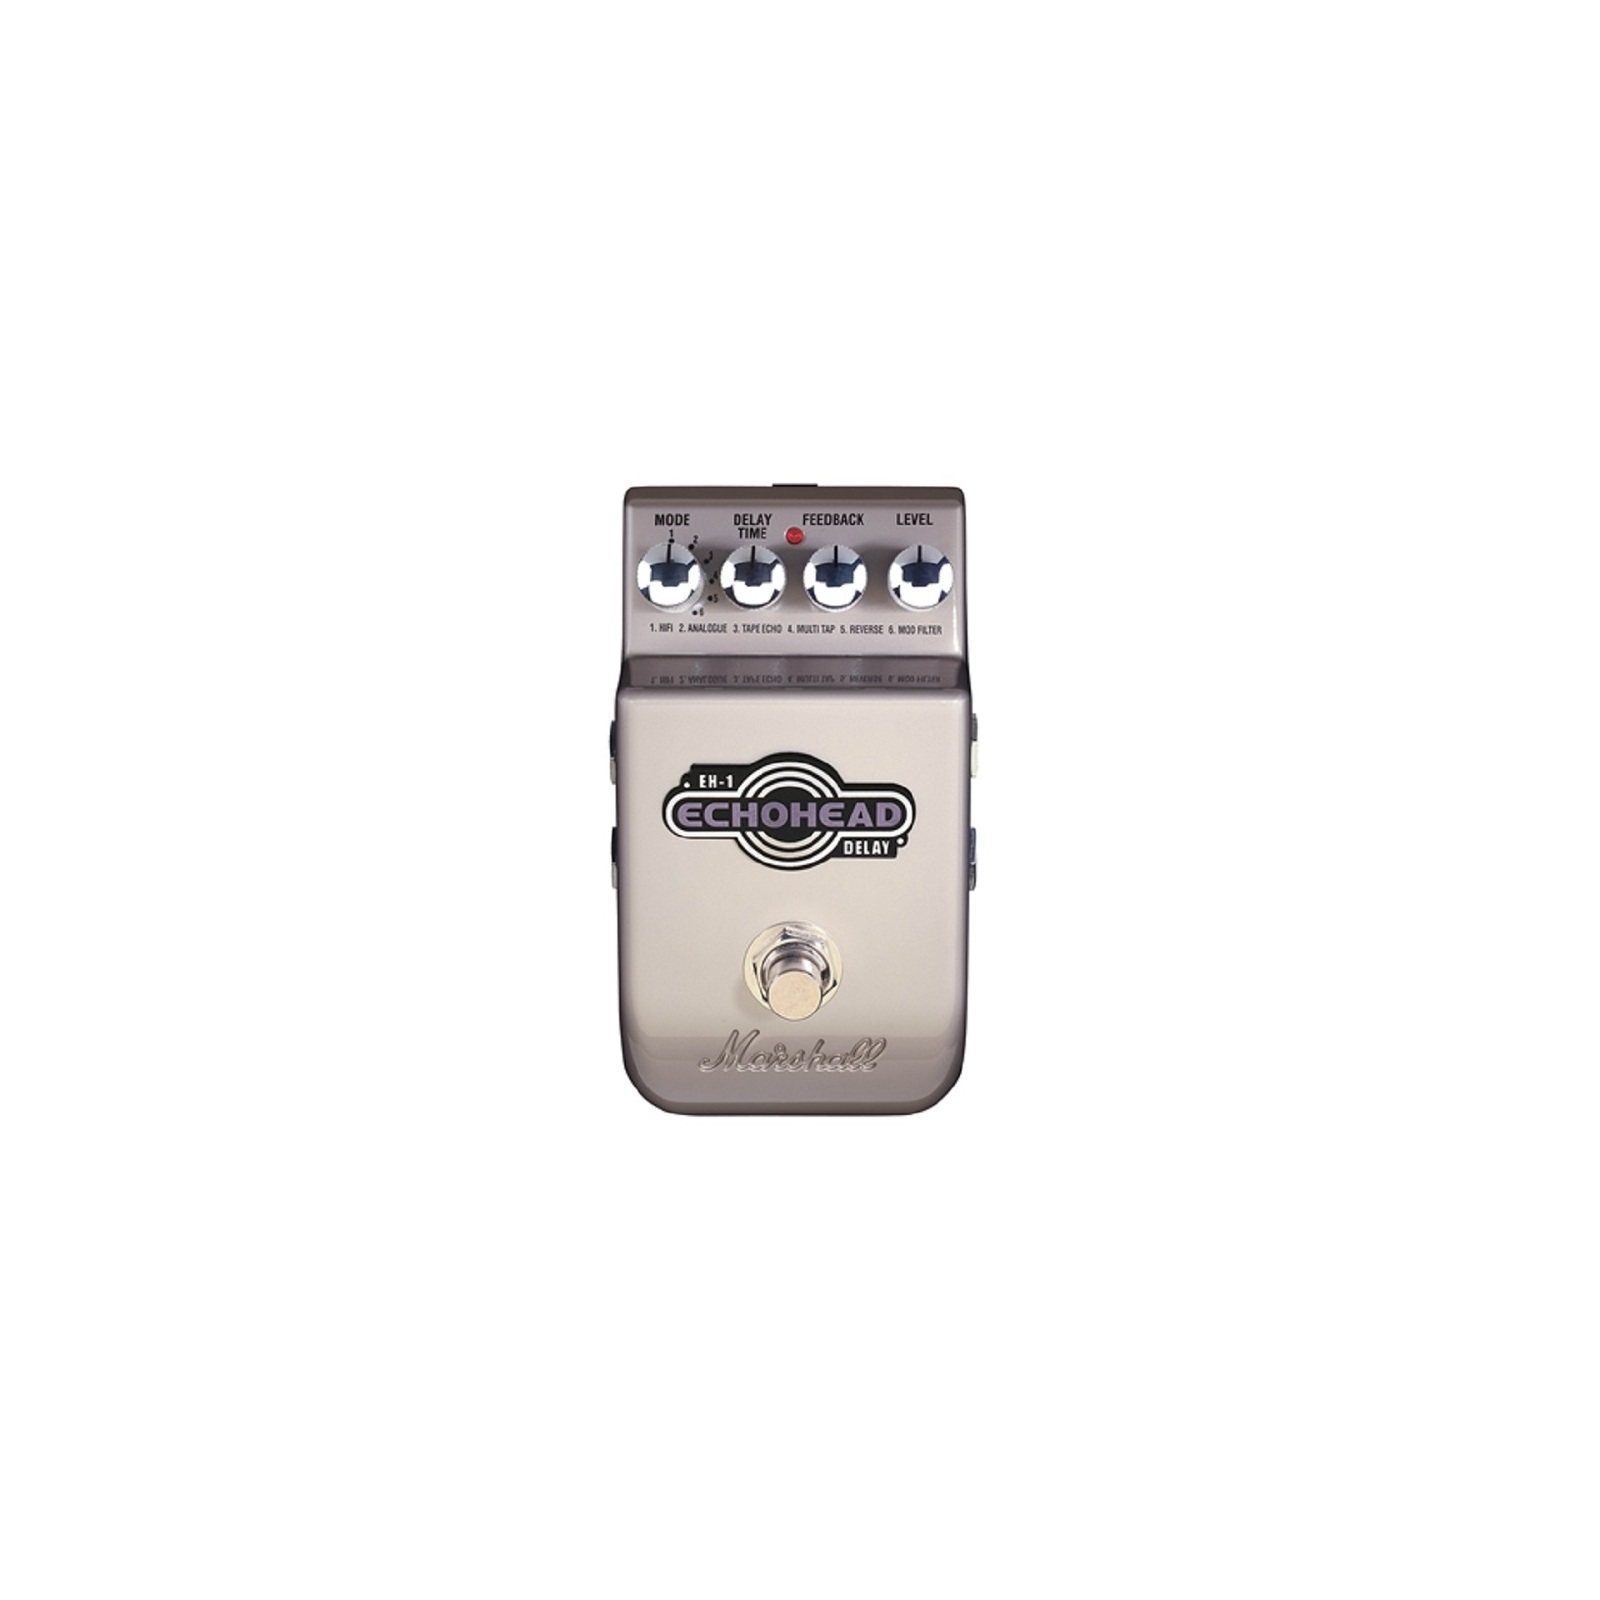 MARSHALL EH1 STEREO DELAY PEDAL